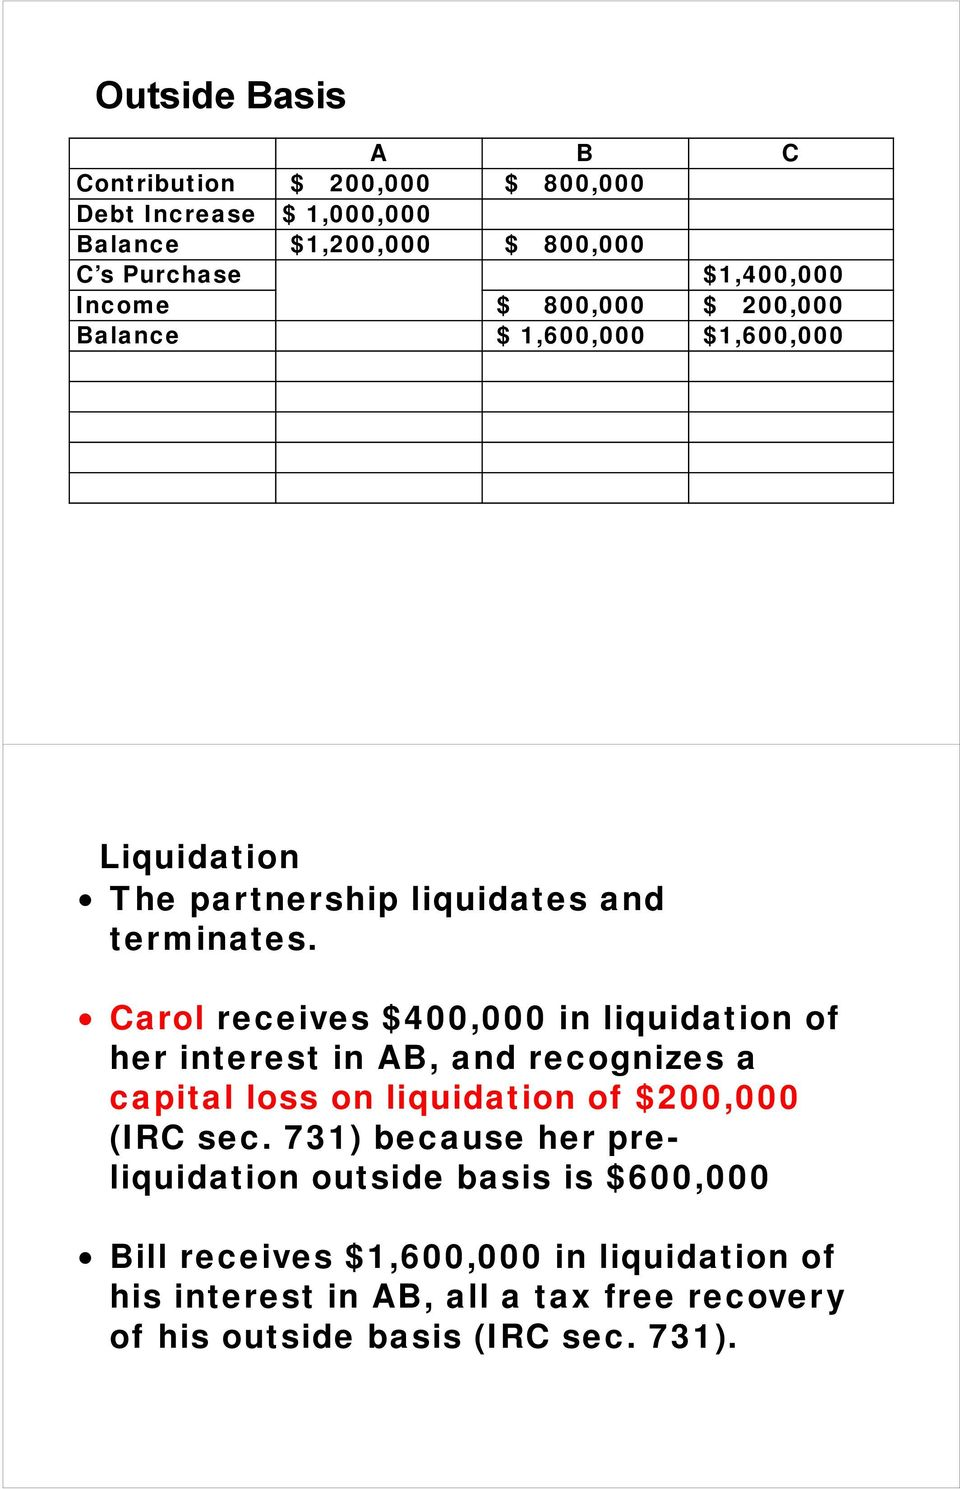 Carol receives $400,000 in liquidation of her interest in AB, and recognizes a capital loss on liquidation of $200,000 (IRC sec.